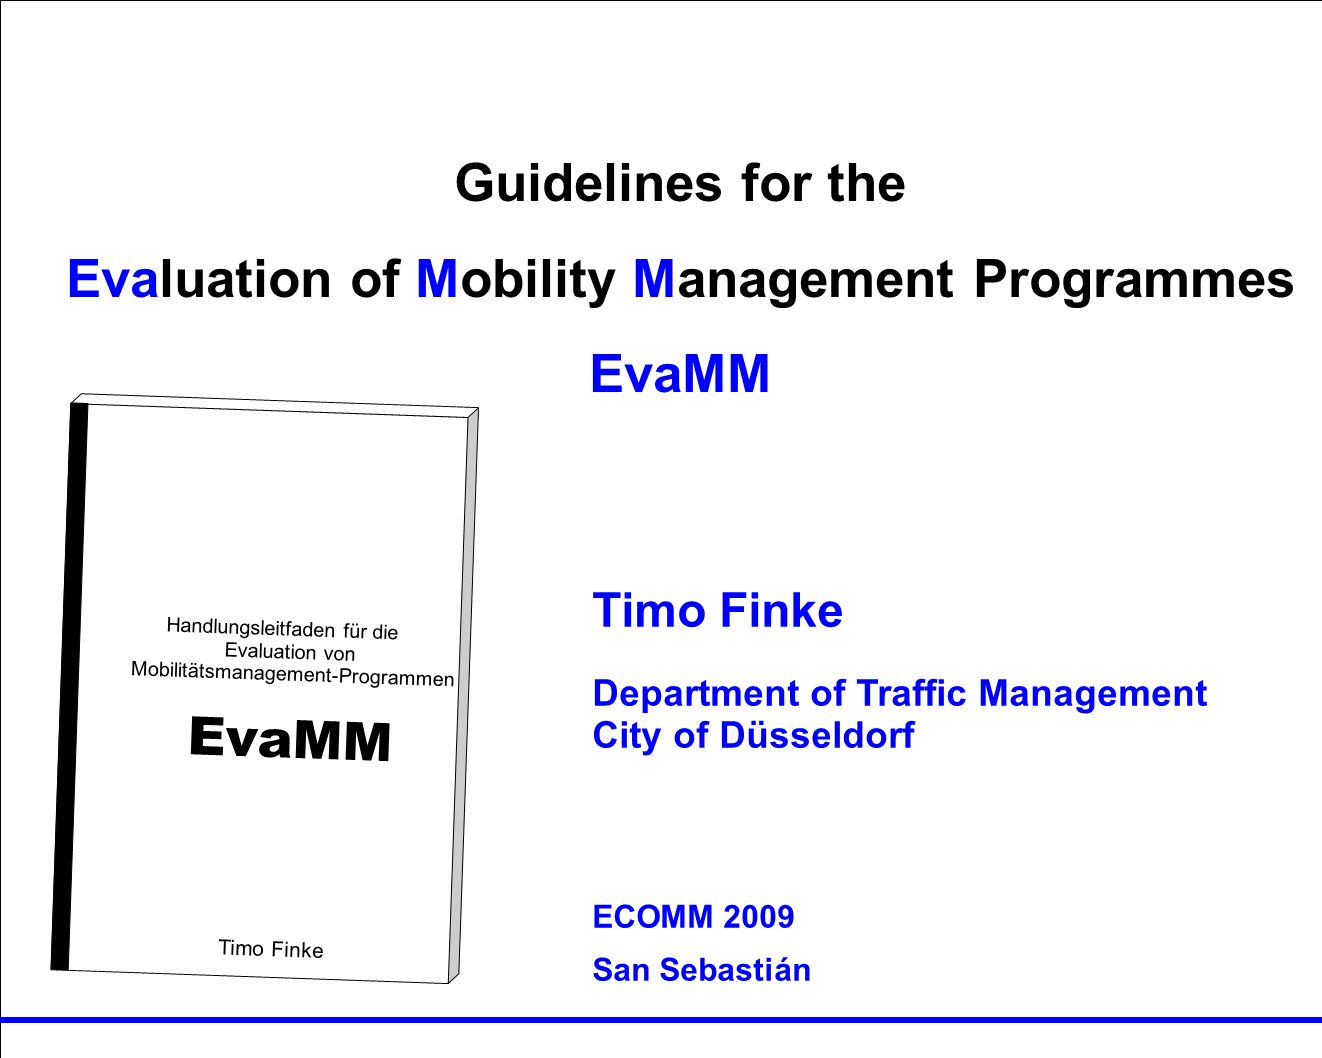 Guidelines for the Evaluation von MM Programmes EvaMM Timo Finke RUTH Guidelines for the Evaluation of Mobility Management Programmes EvaMM Handlungsleitfaden für die Evaluation von Mobilitätsmanagement-Programmen EvaMM Timo Finke Timo Finke Department of Traffic Management City of Düsseldorf ECOMM 2009 San Sebastián